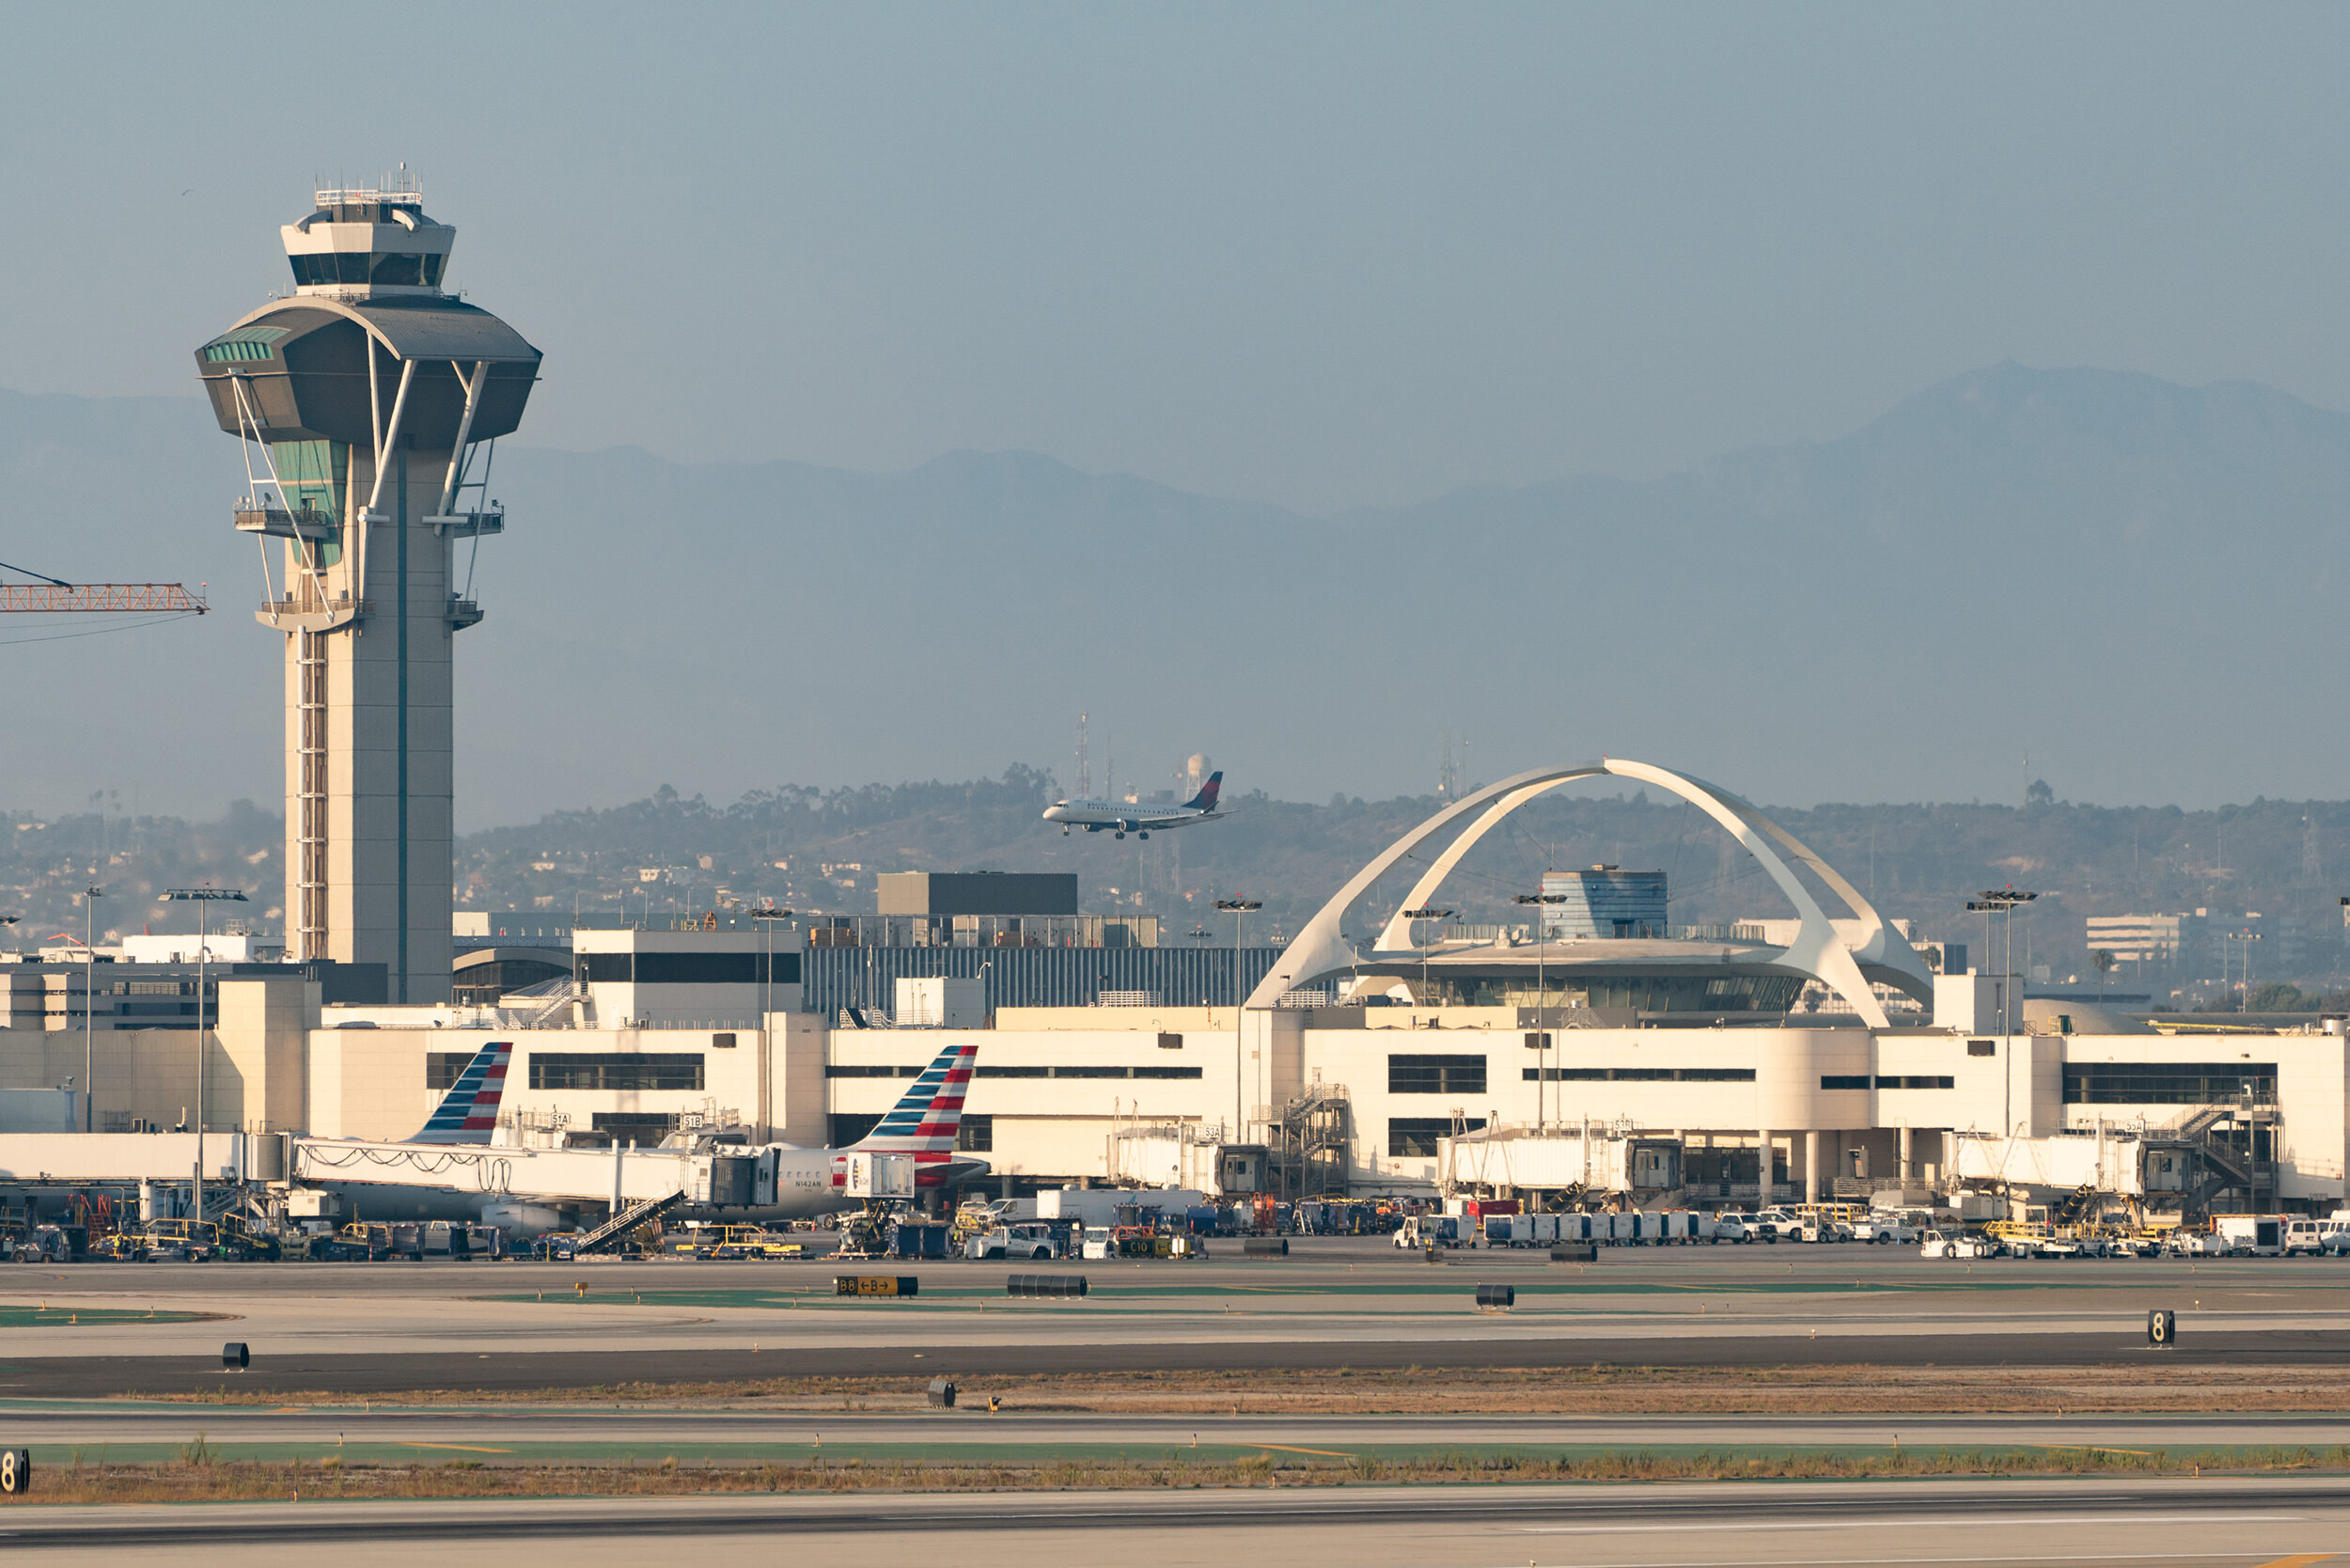 Mysterious 'Jetpack Man' may have been spotted again in the skies near LAX